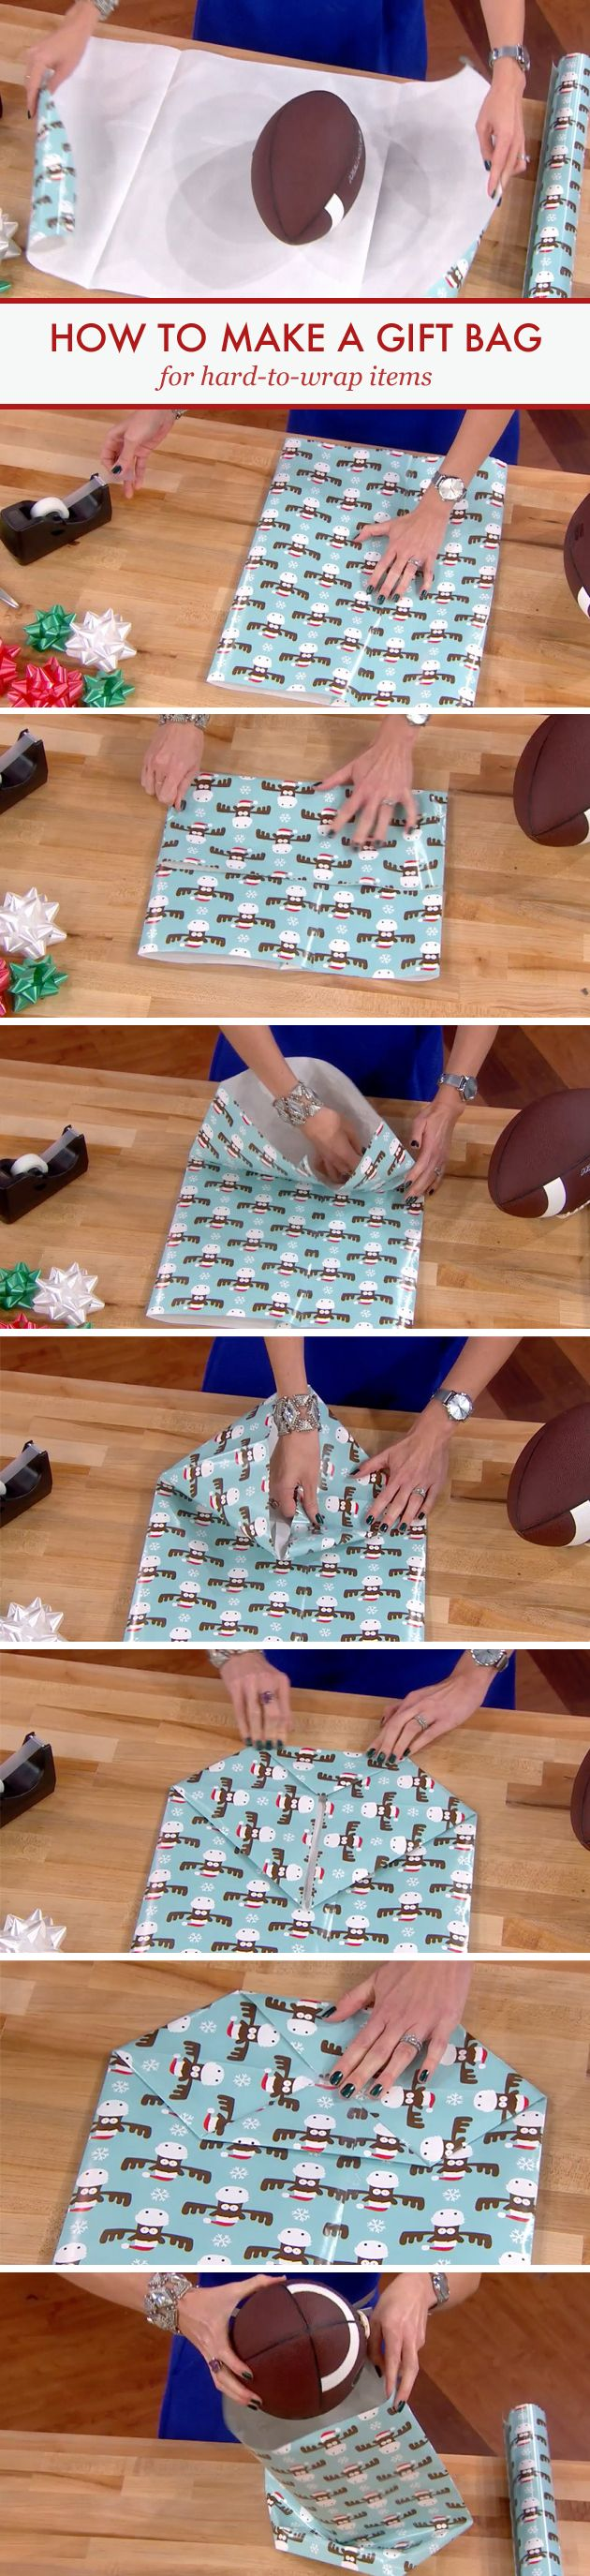 How to make DIY gift bags for hard-to-wrap items